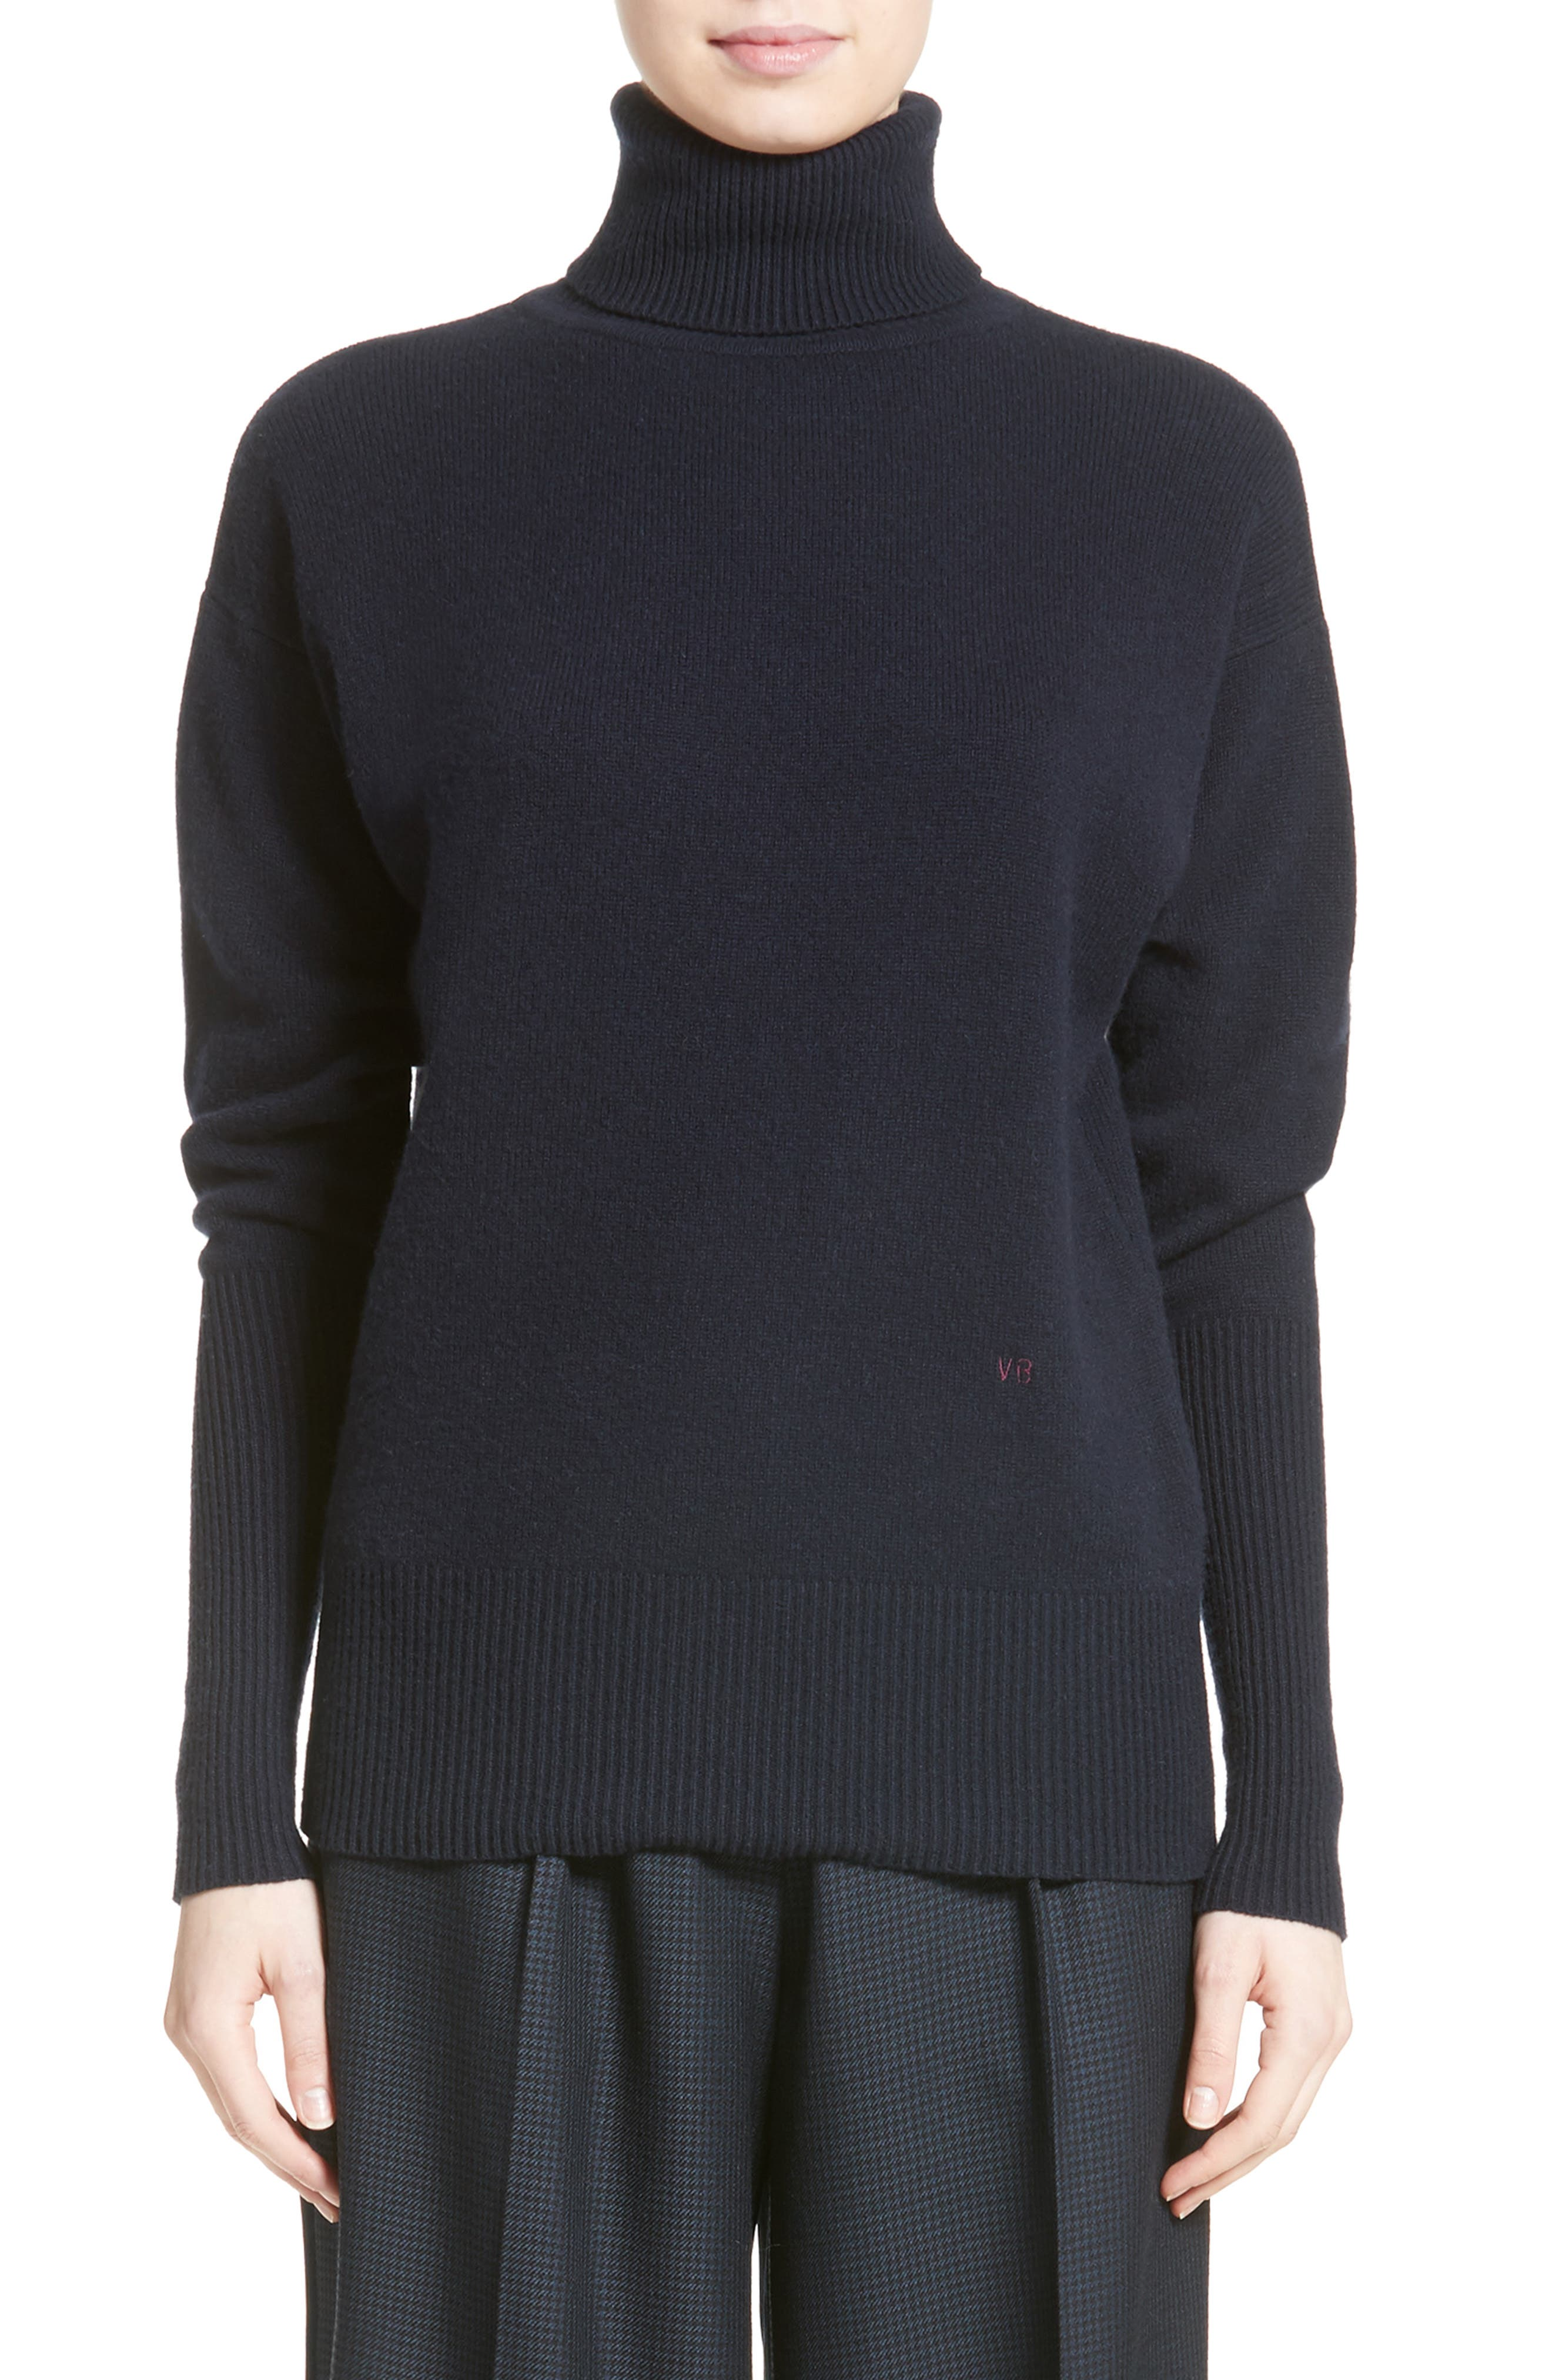 Main Image - Victoria Beckham Cashmere Turtleneck Sweater